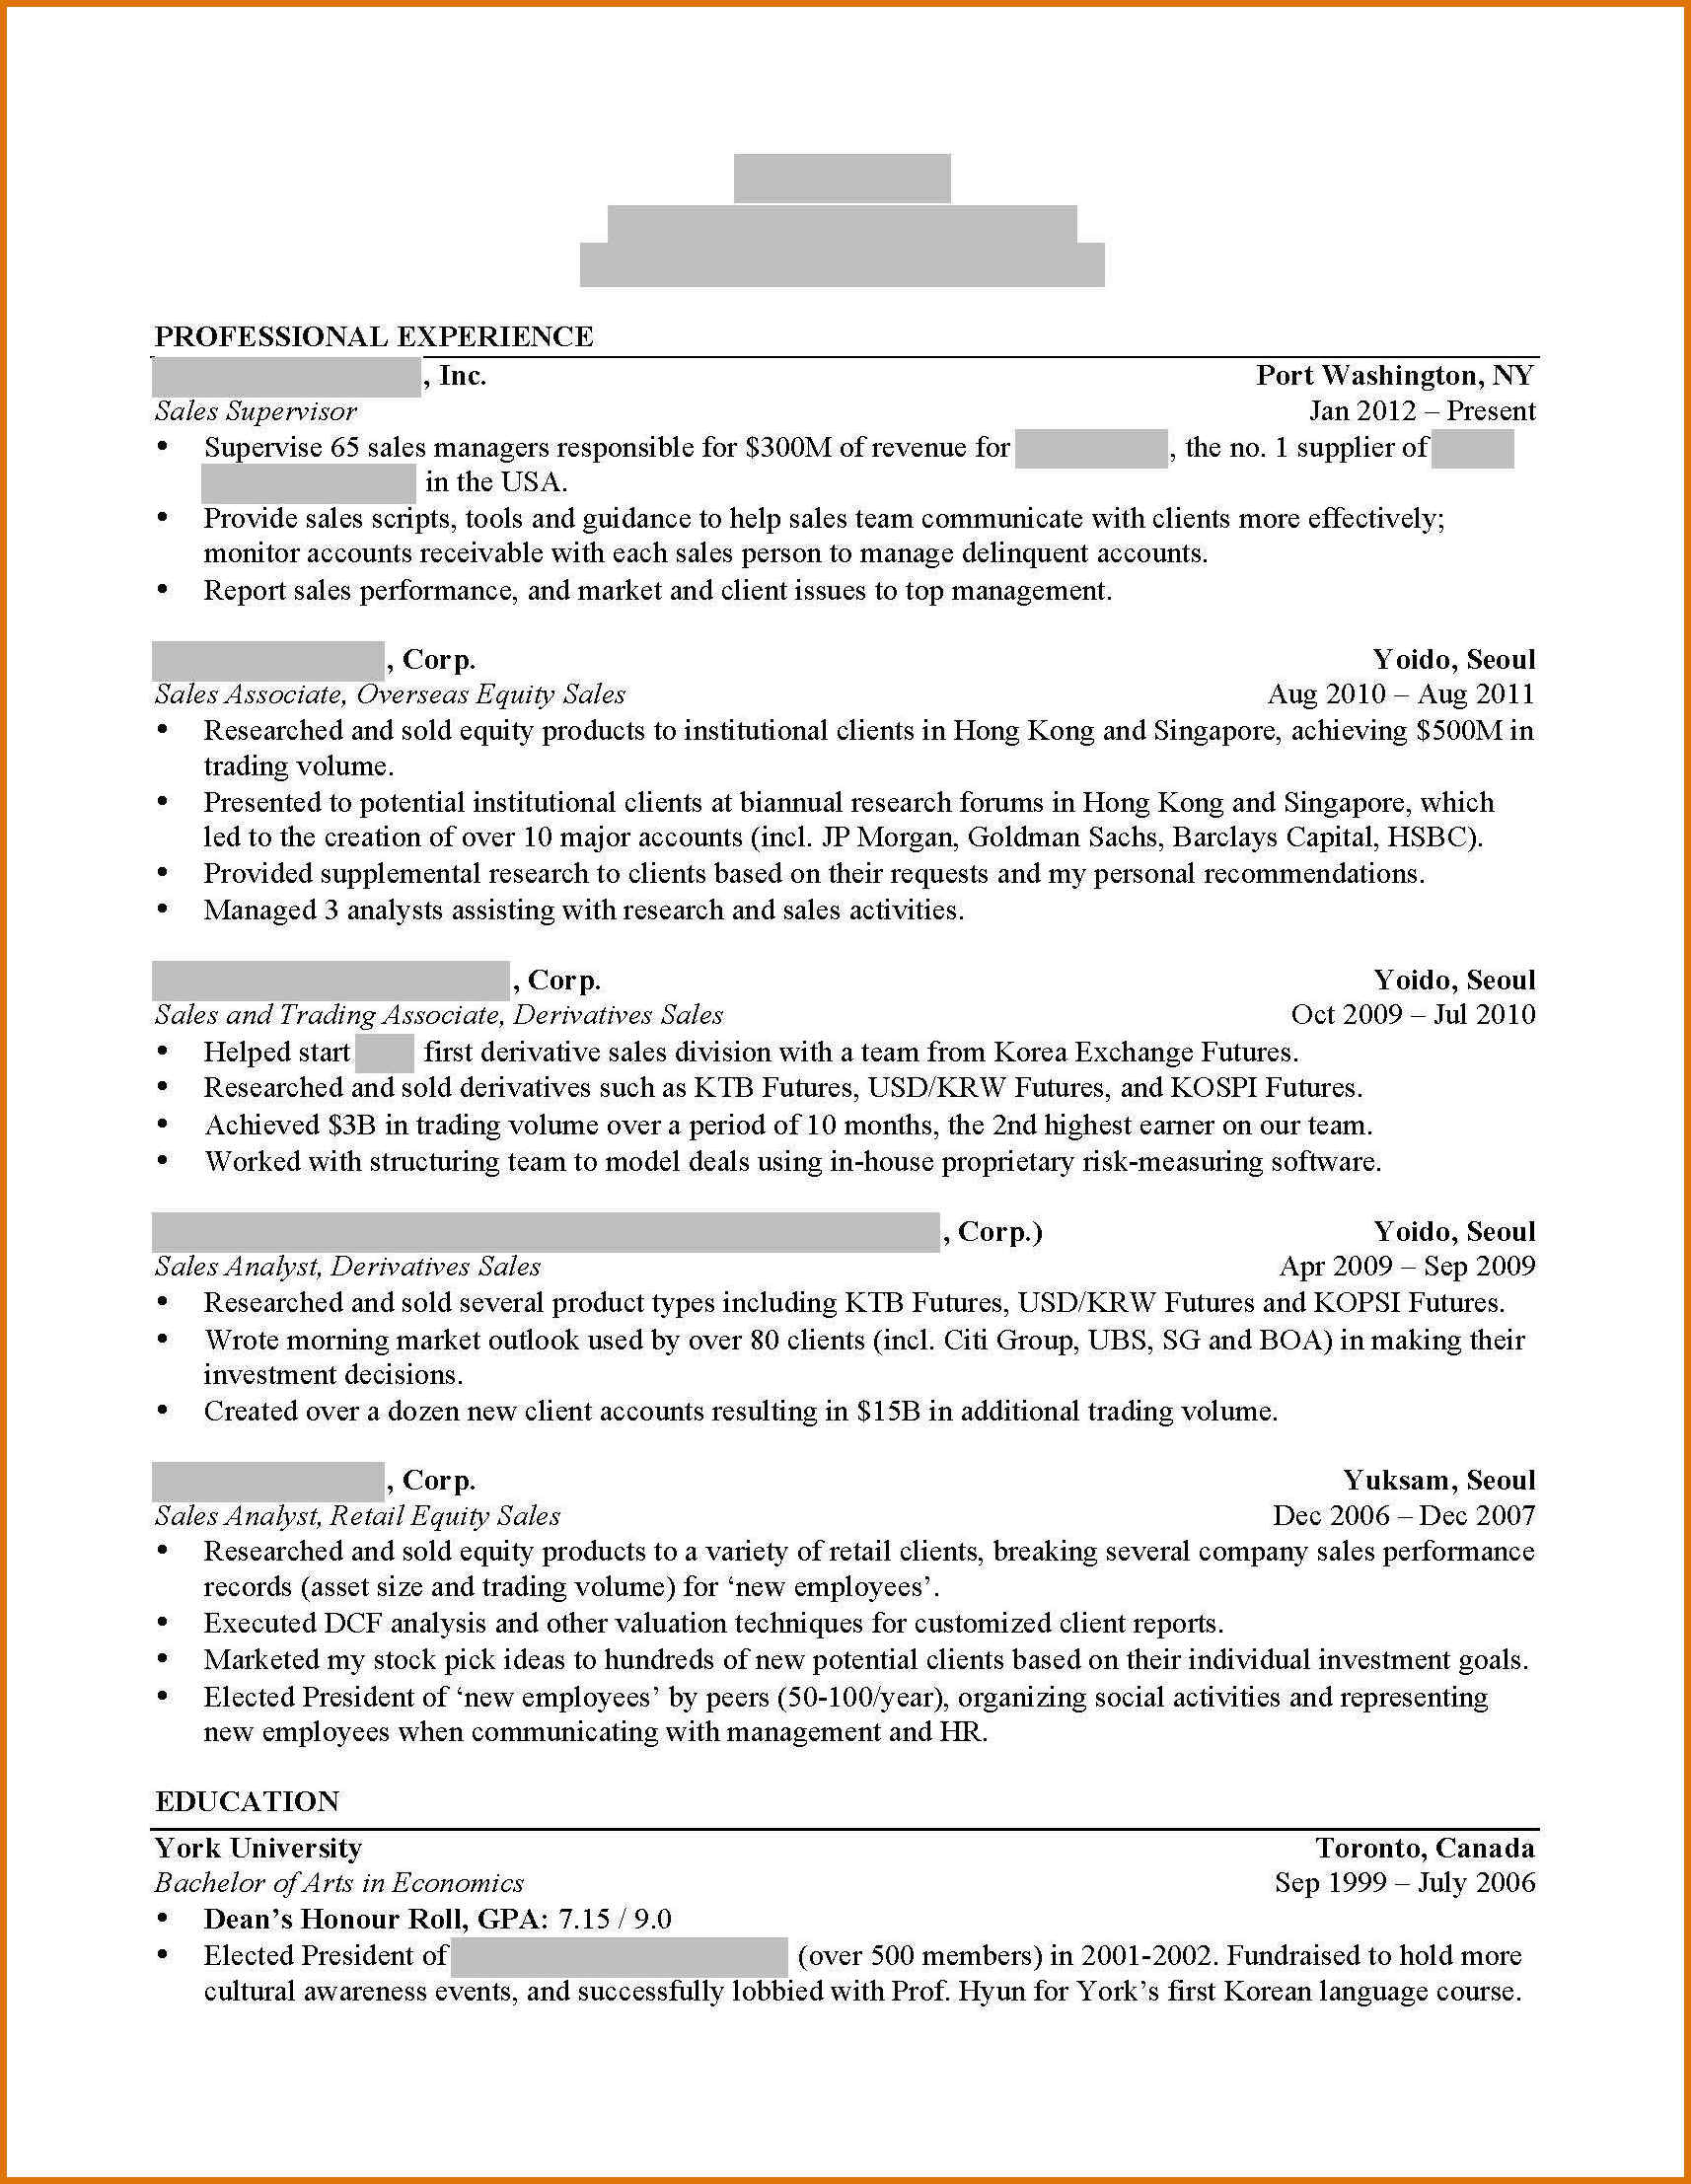 009 Transform Harvard Business School Resume Style On Hbs Class Of Essay Questions Amusing With Mit Length Format Word Counts Tips Limit Book Analysis Awful Count Full